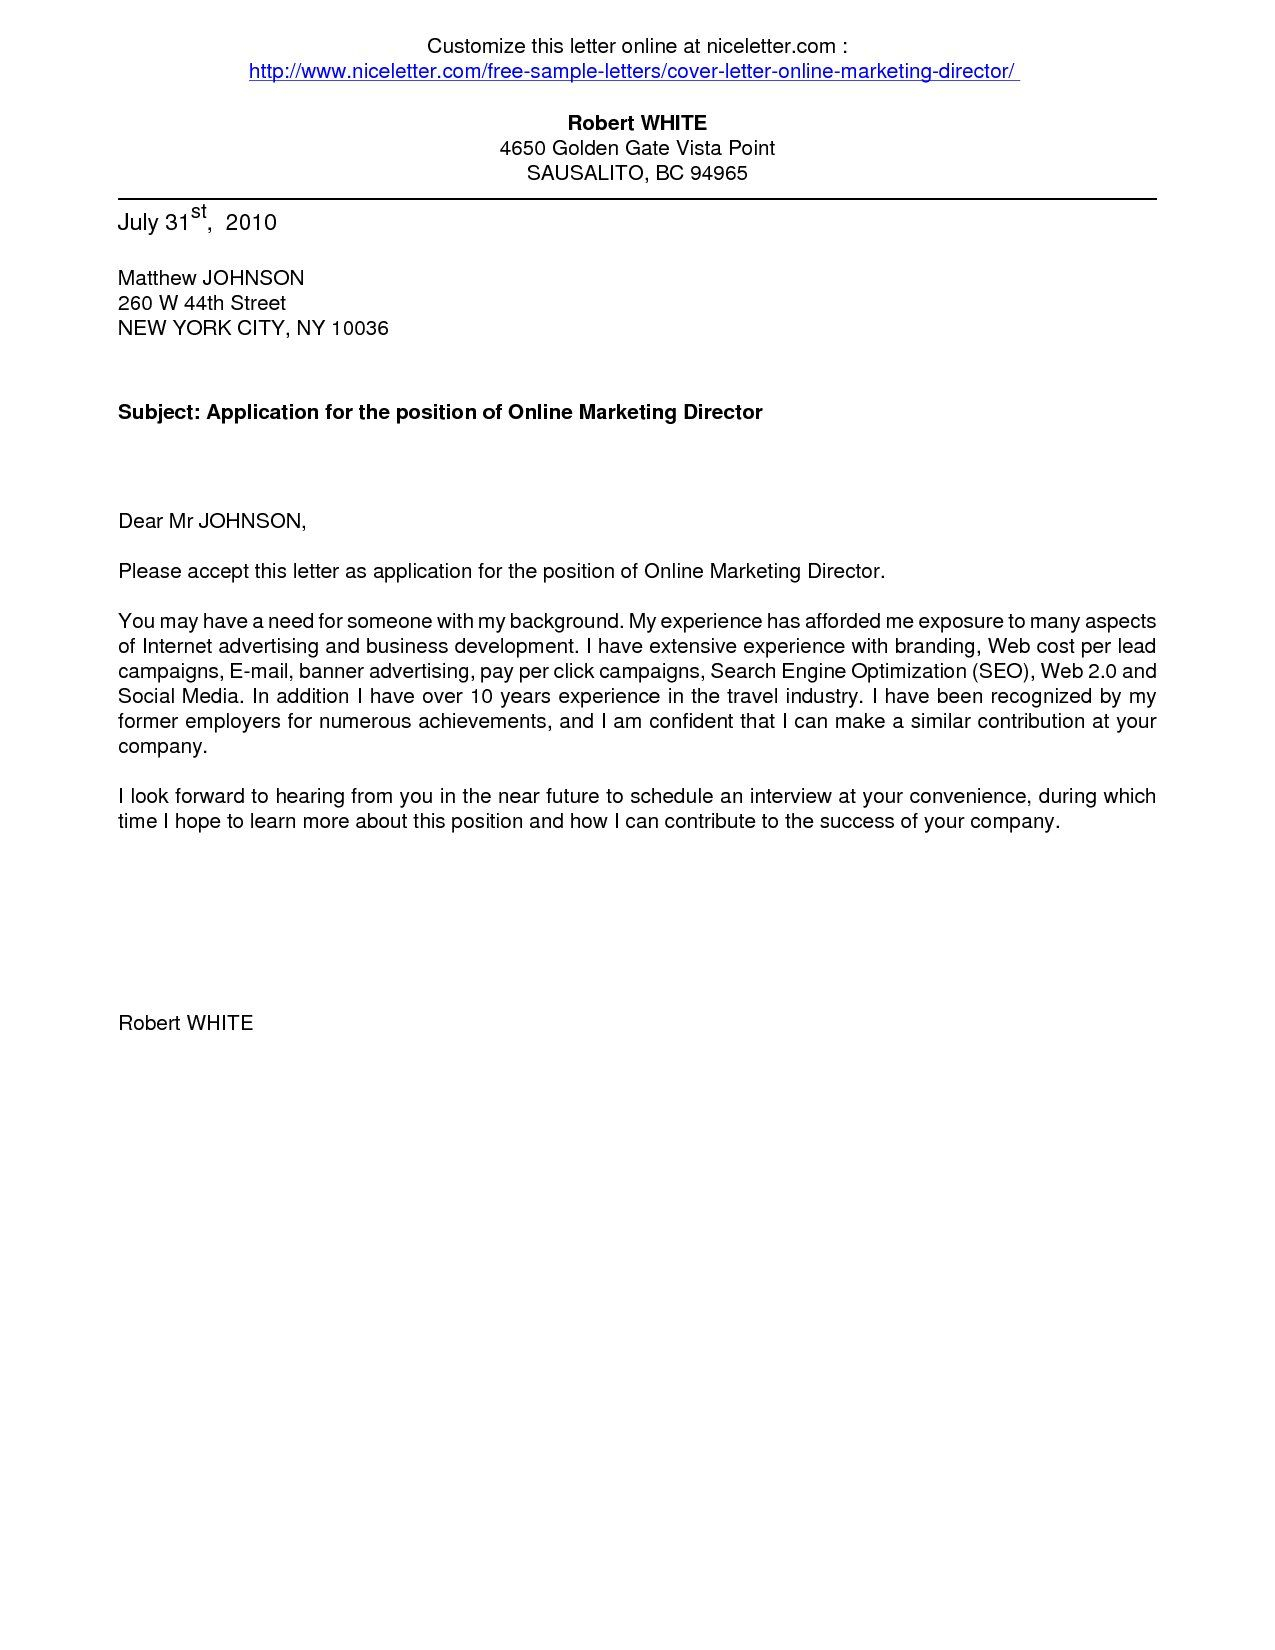 Online Letter Template - Cover Letters Cover Letter for Line Application Business